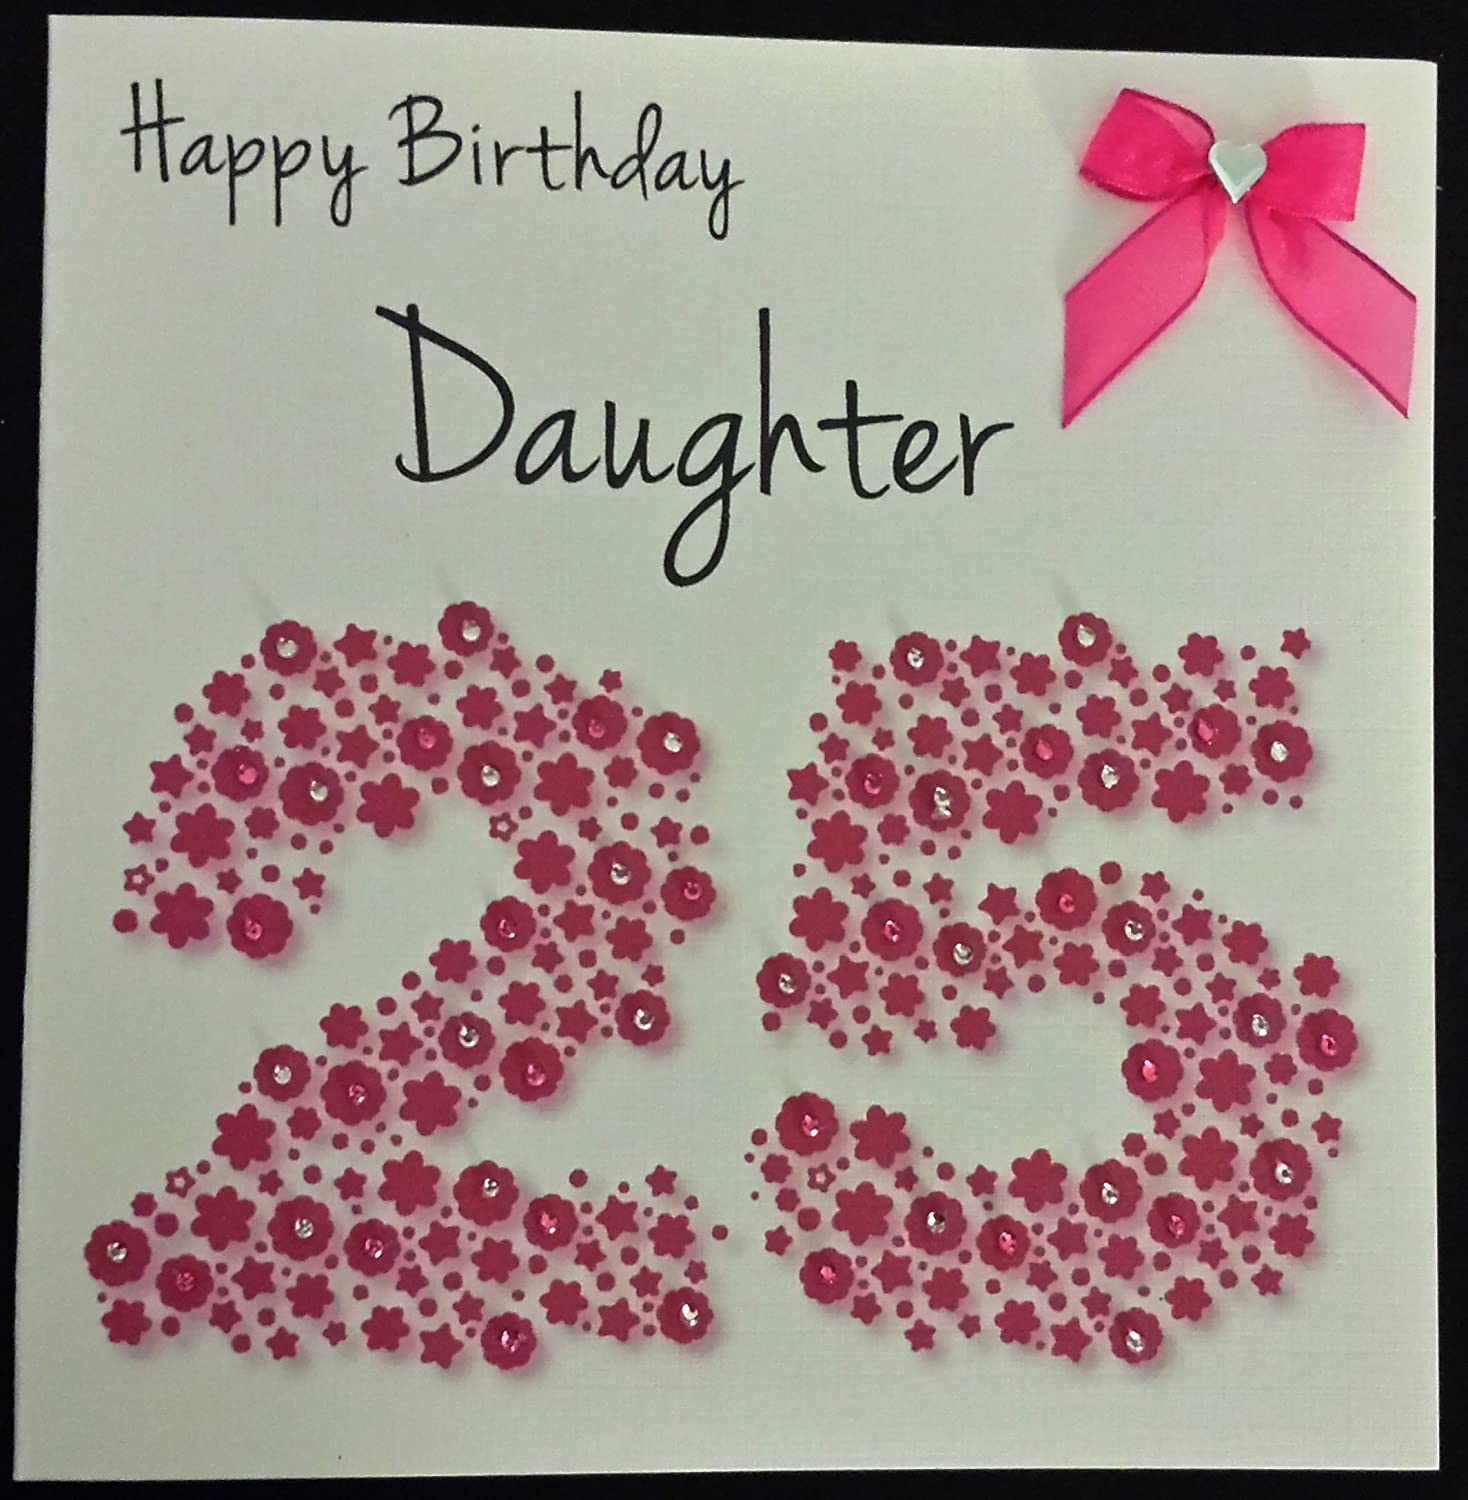 Happy birthday card daughter 25th bright pink flowerbed happy birthday card daughter 25th bright pink flowerbed handmade card amazon office products bookmarktalkfo Gallery